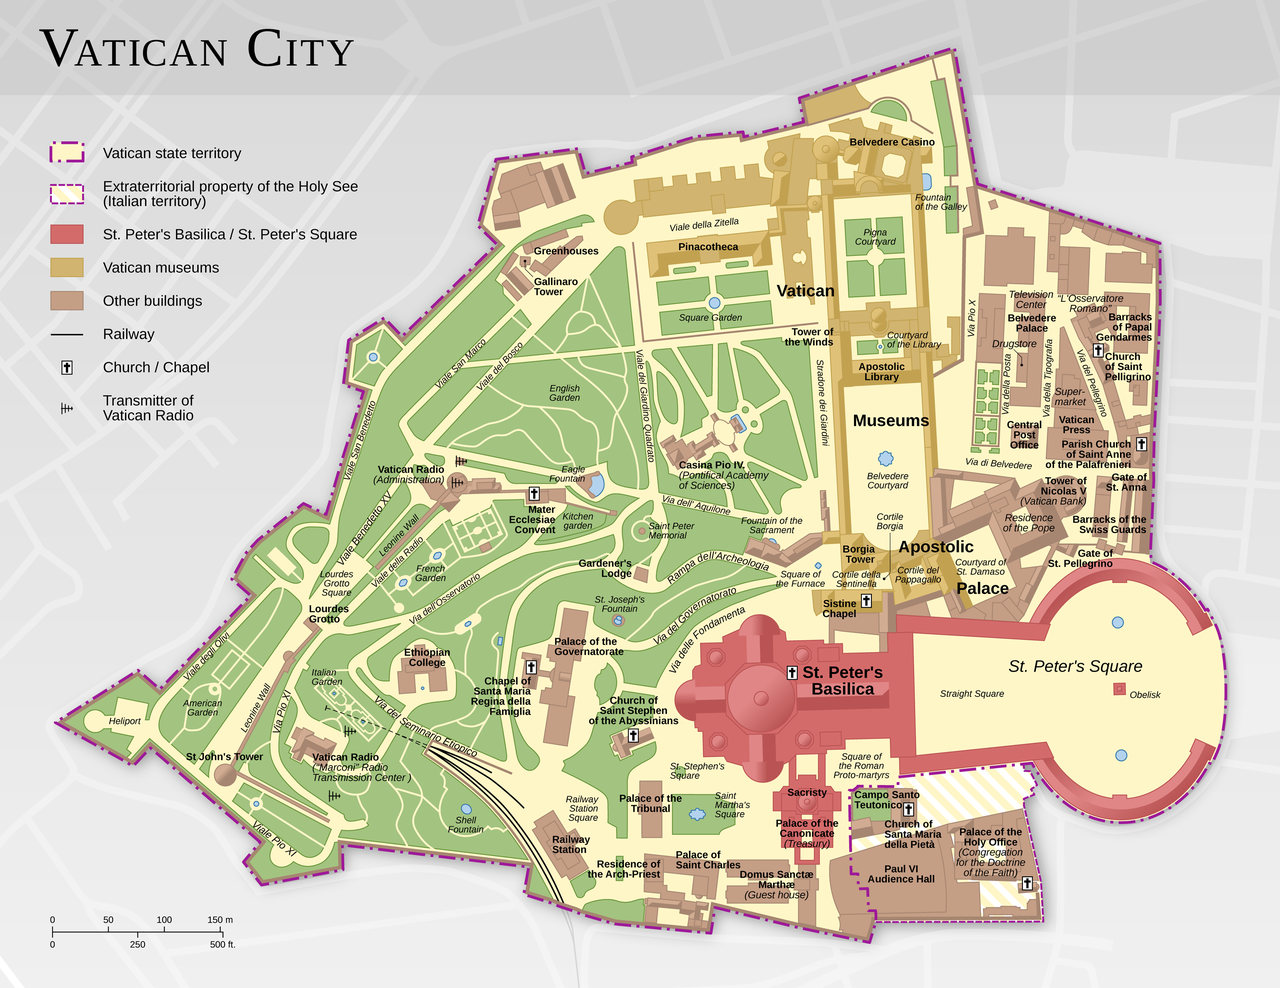 File:Vatican City map EN.png - Wikipedia, the free encyclopedia